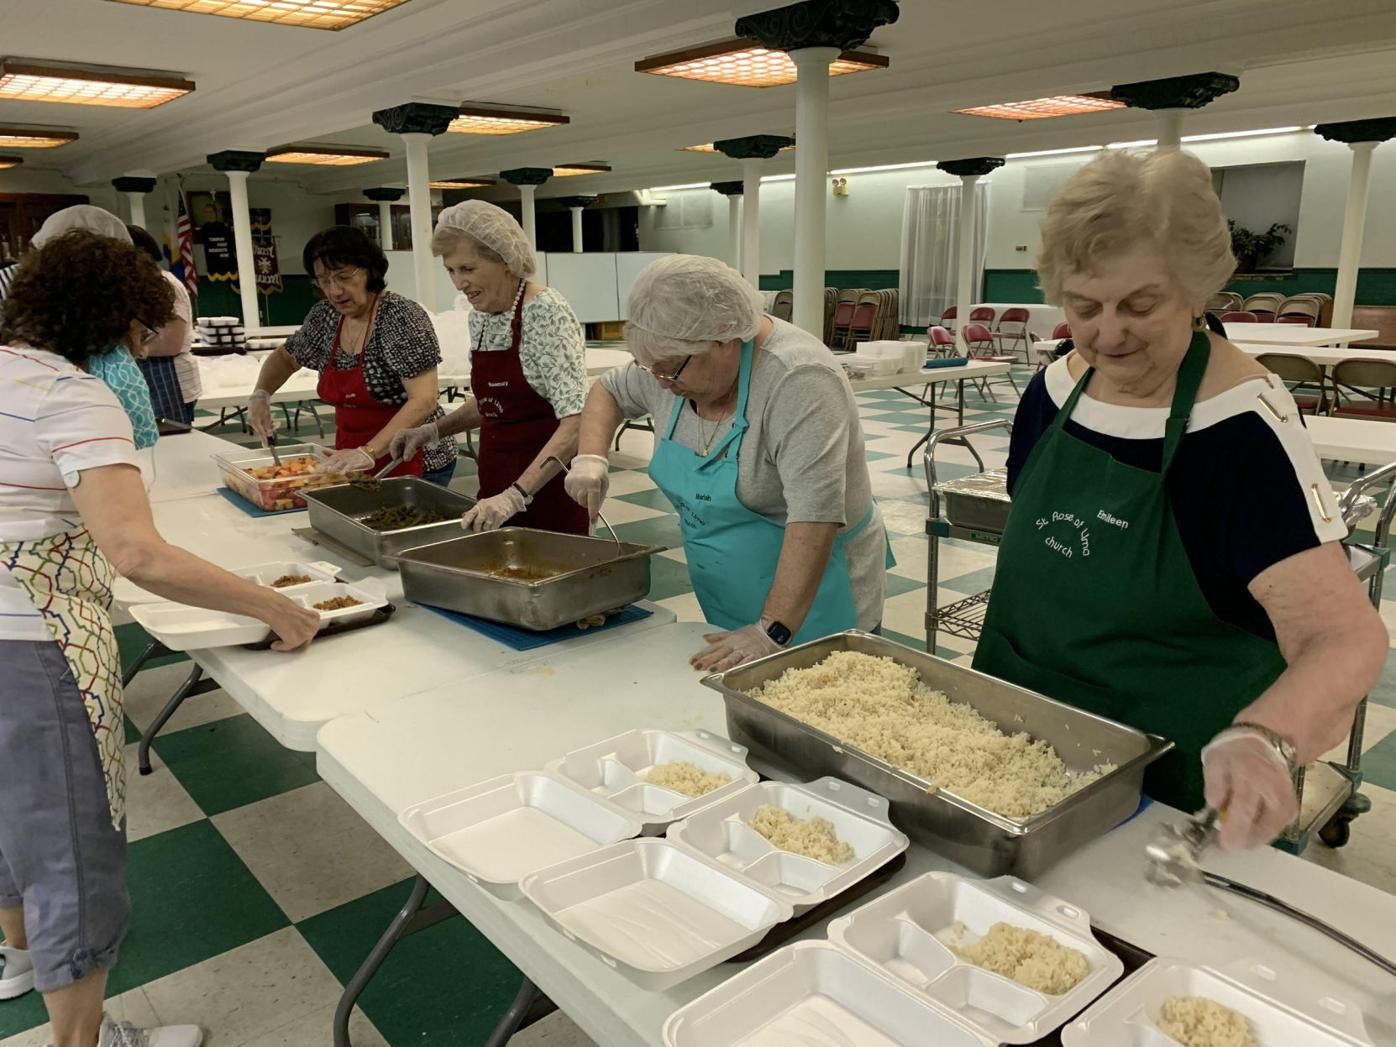 A labor of love: Volunteers serve Midvalley, Upvalley with meals and more